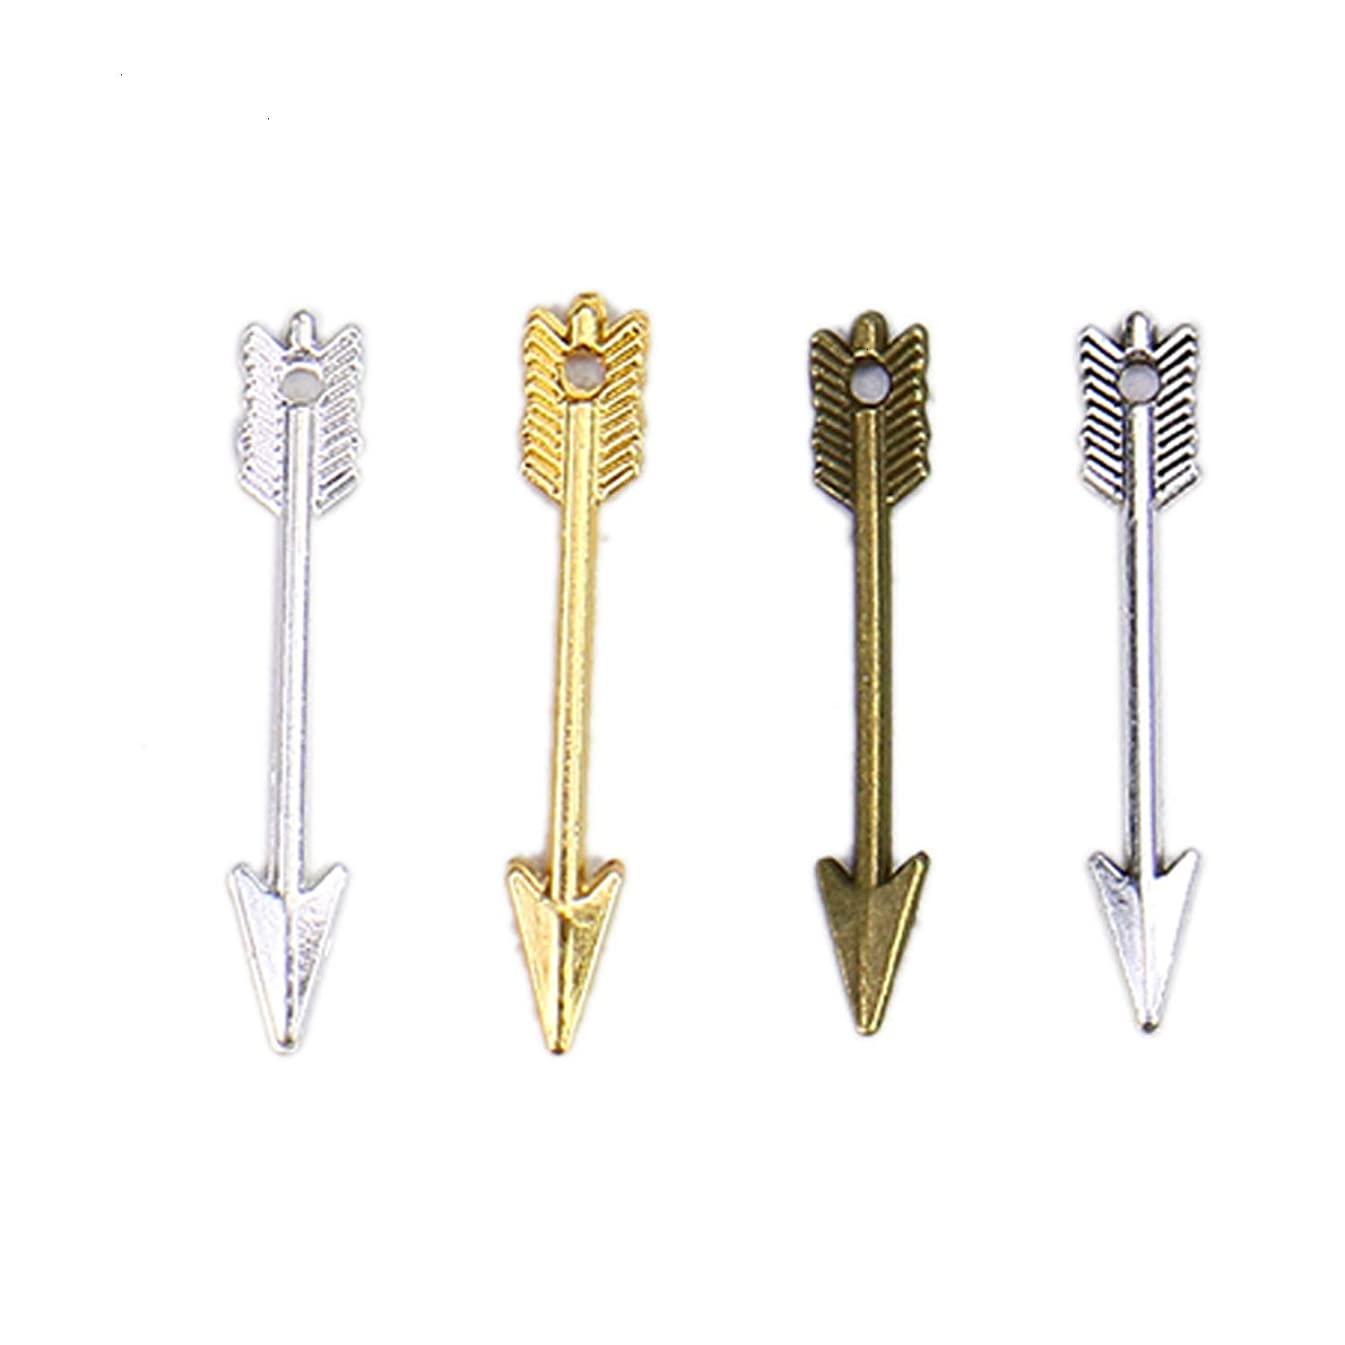 Monrocco 160pcs Vintage Antique Bronze Alloy Arrow Charms Pendant Jewelry Findings for Jewelry Making Necklace Bracelet DIY 31x5mm (4 Color)